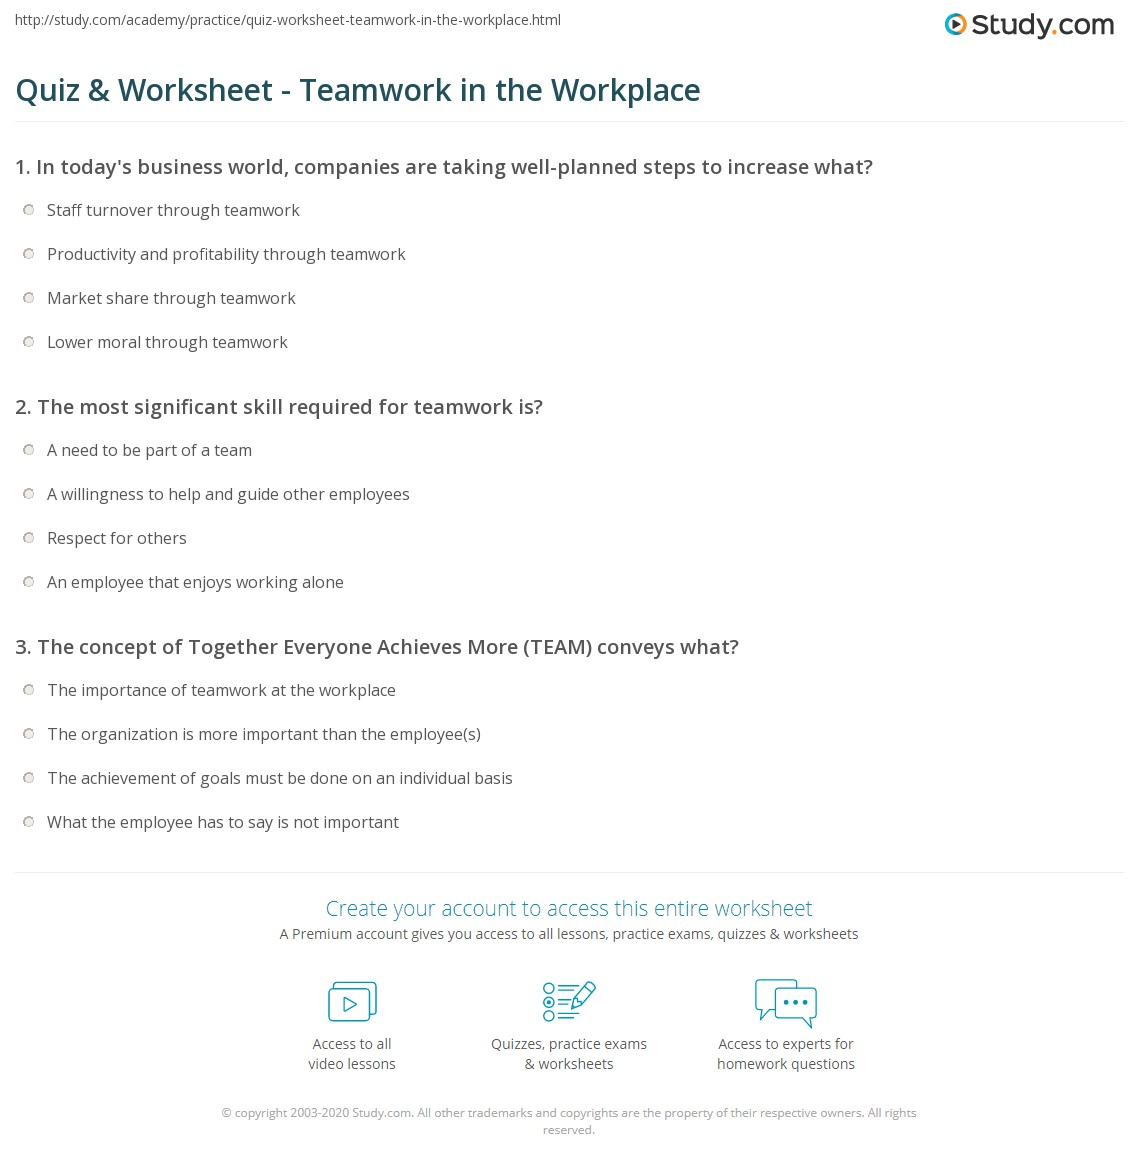 quiz worksheet teamwork in the workplace com print teamwork skills in the workplace definition examples worksheet